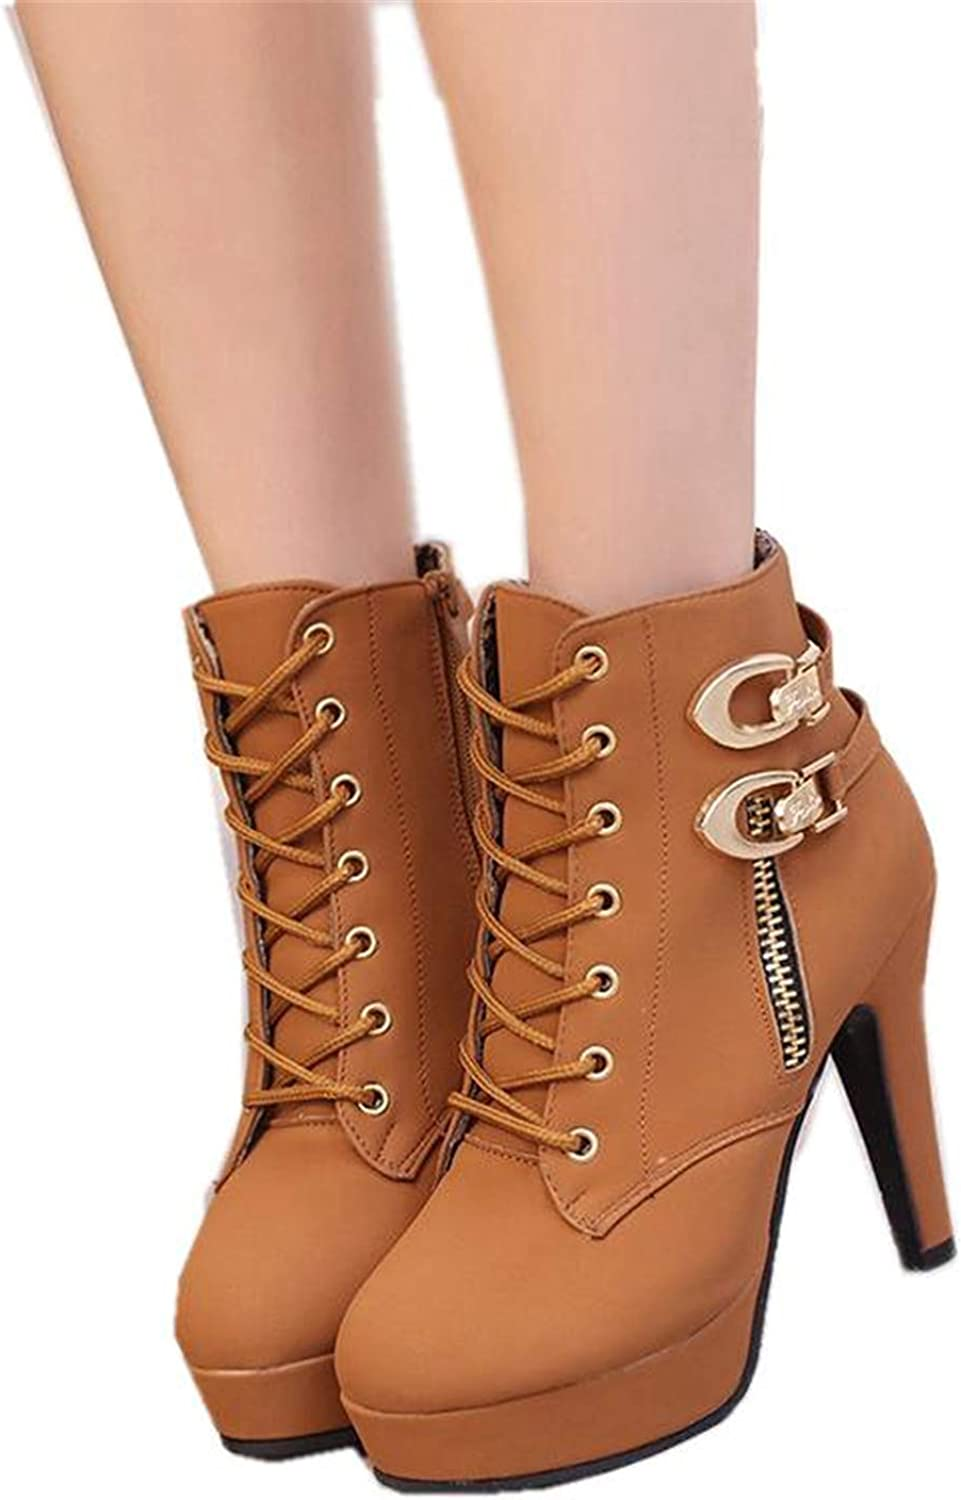 Susan1999 Spring Autumn Women Ankle Boots Female High Heels Lace Up Leather shoes Woman Double Buckle Platform